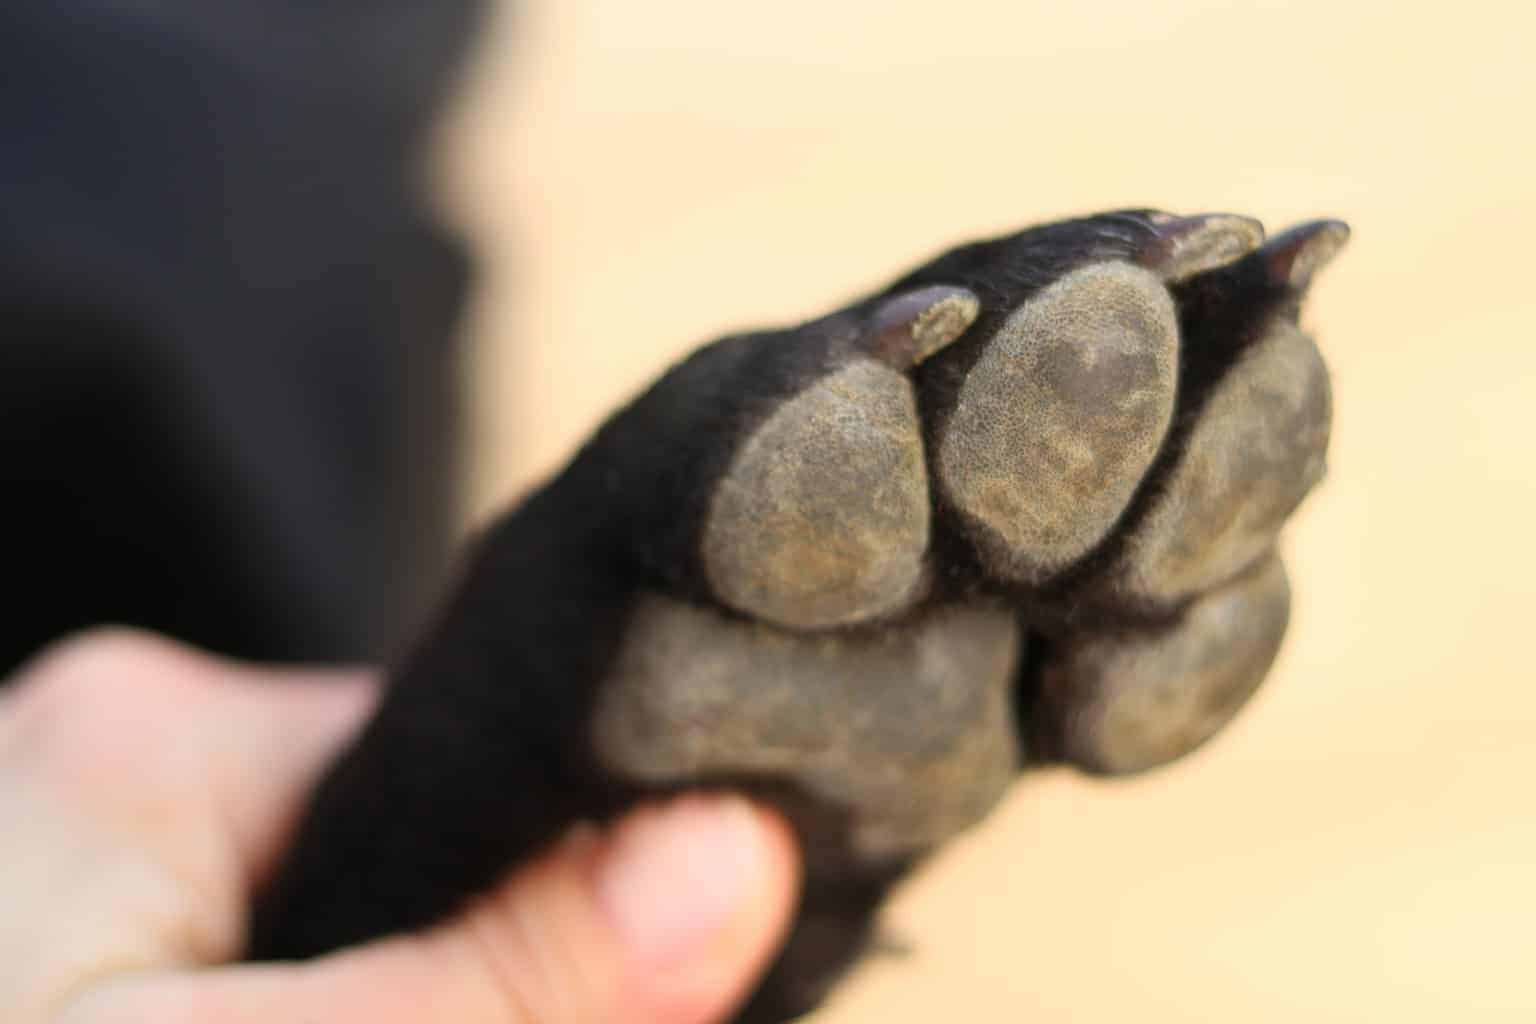 A person holding a puppies paw.